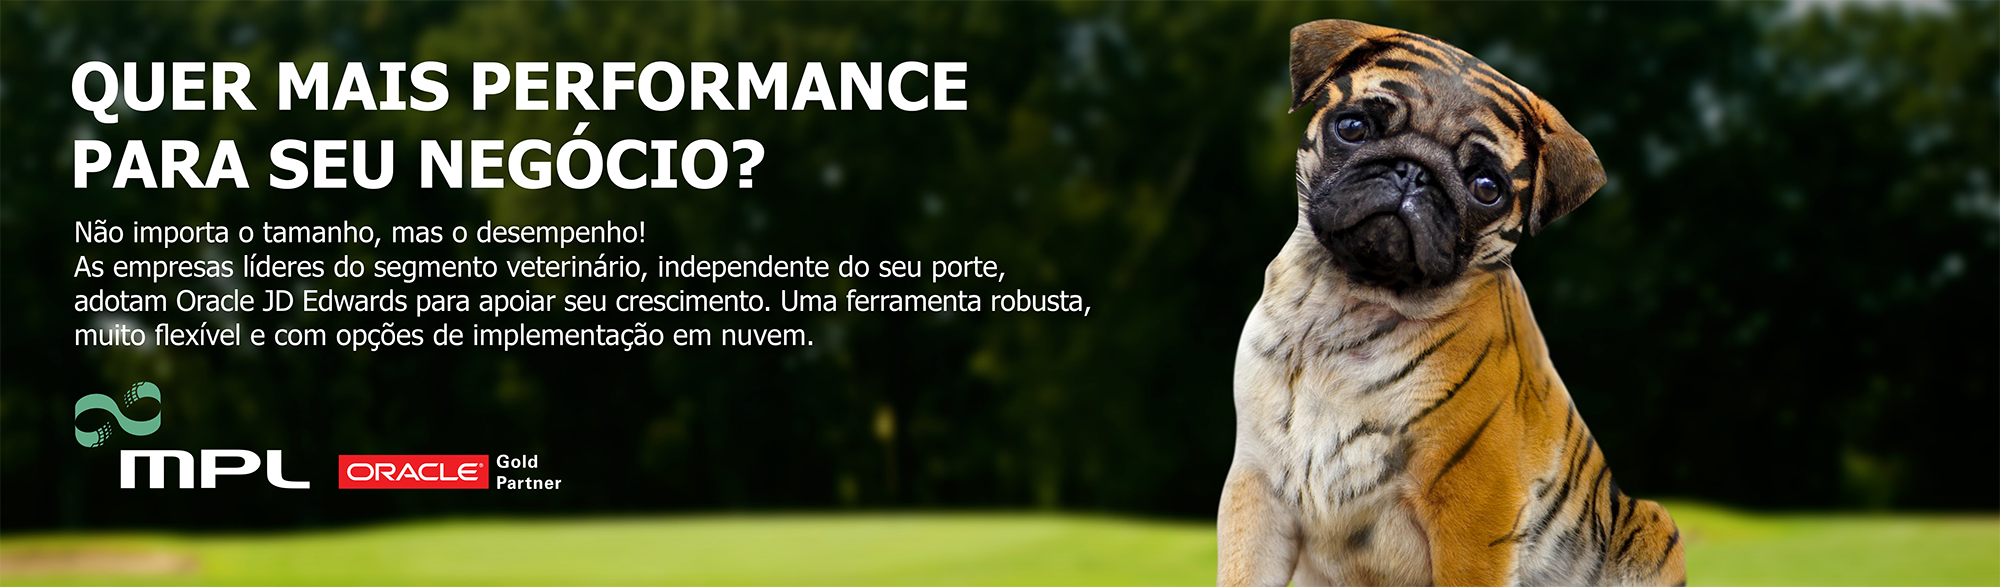 oracle jd edwards para segmento veterinário